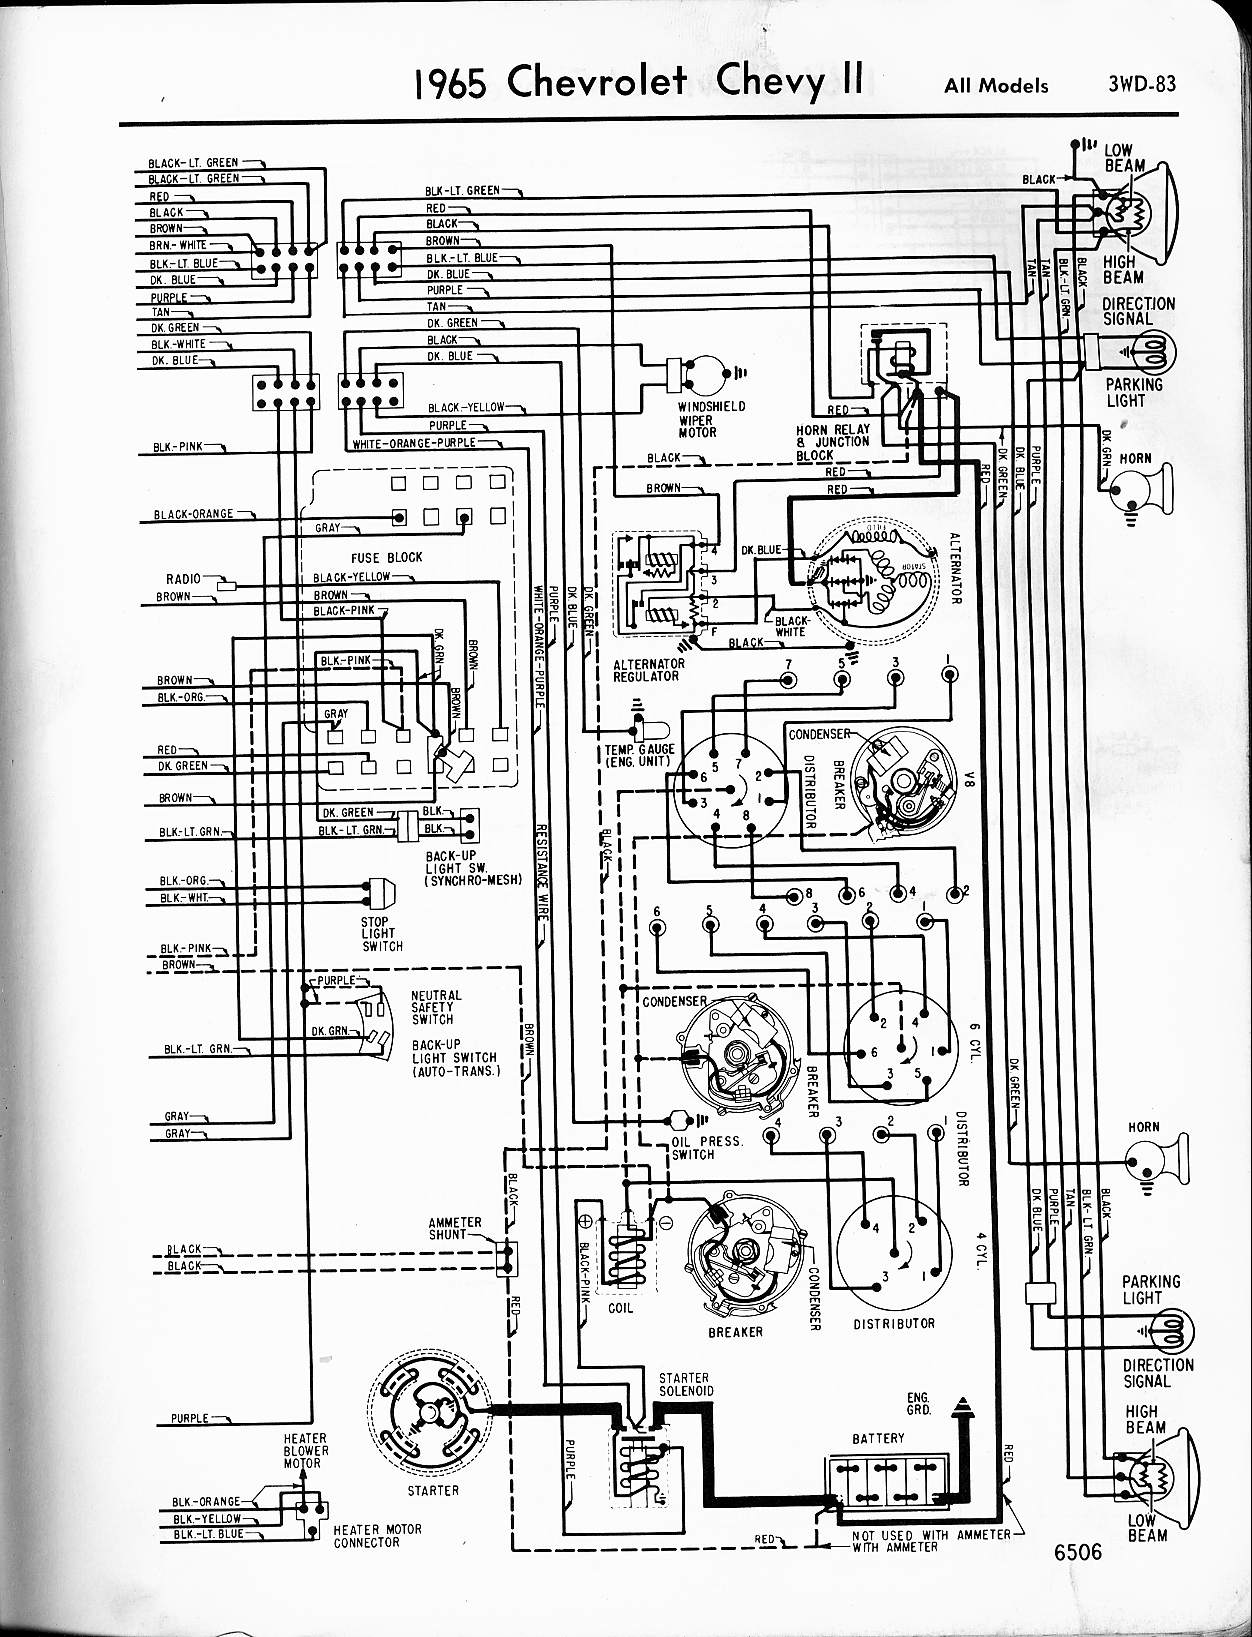 1971 chevy wiring diagrams detailed schematics diagram honda civic alternator wiring diagram chevy diagrams 1967 chevelle fuse box diagram 1965 chevy ii wiring diagram figure a figure b